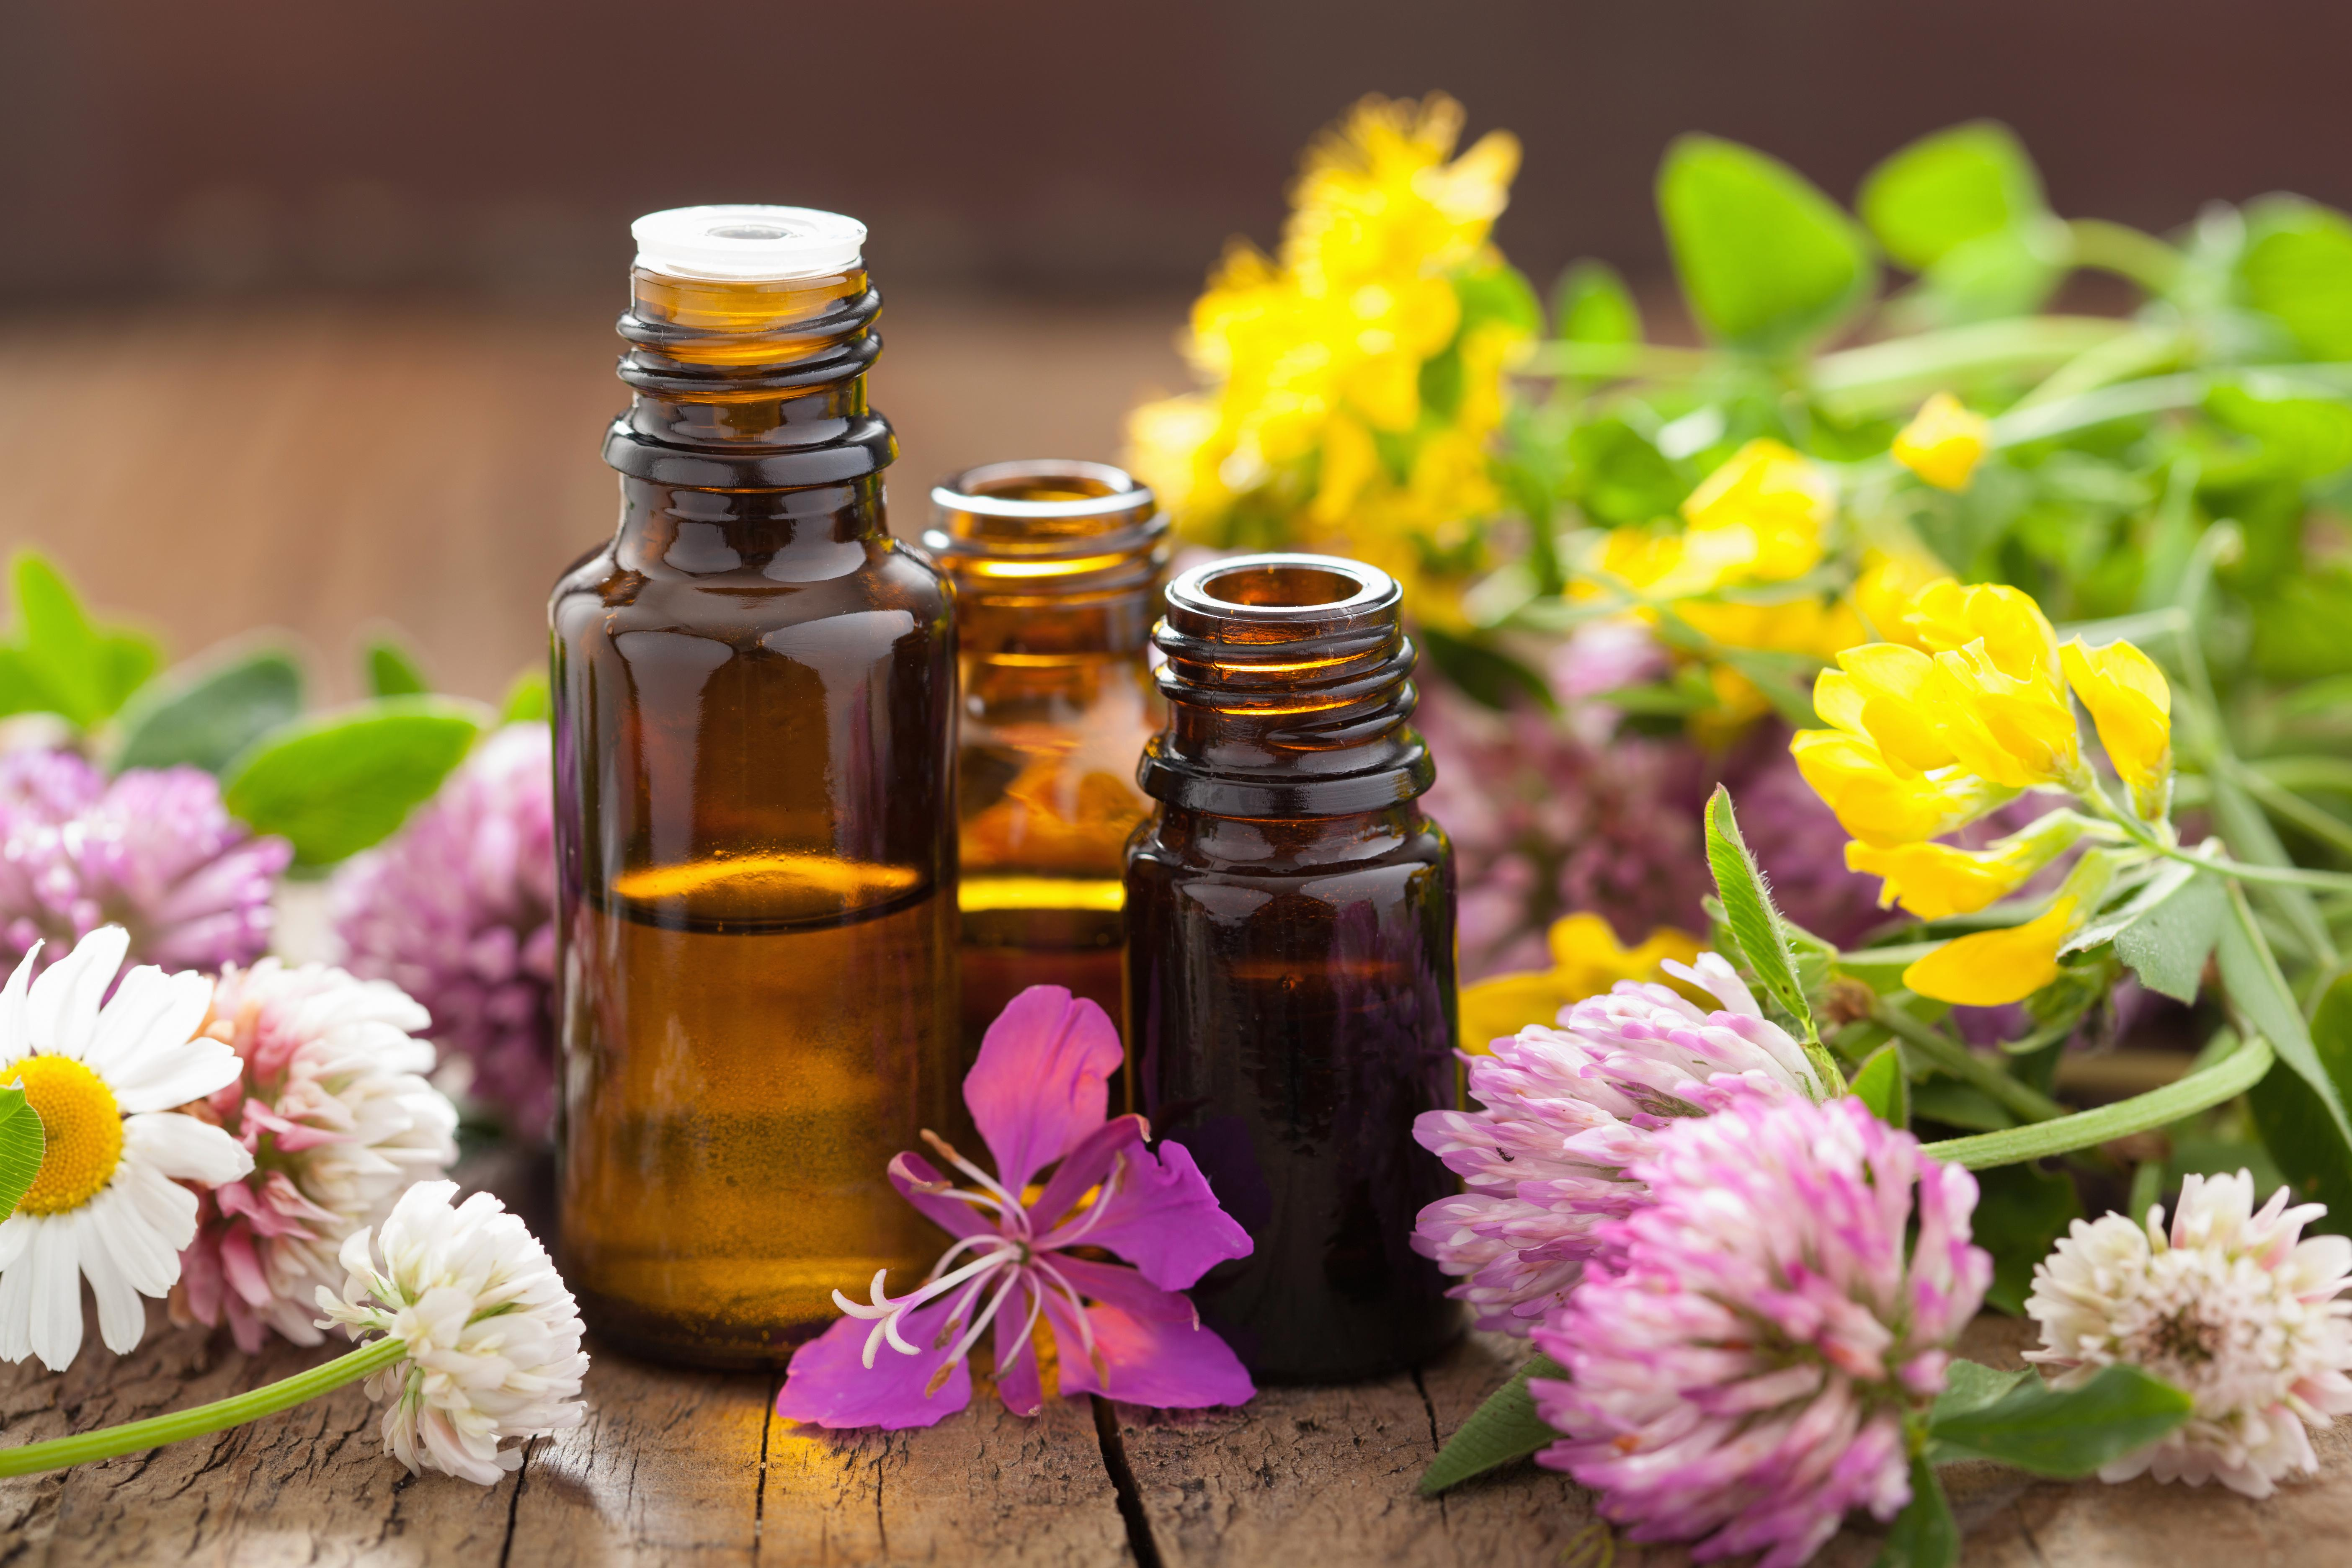 Getting Started with Essential Oils - Battersea Square